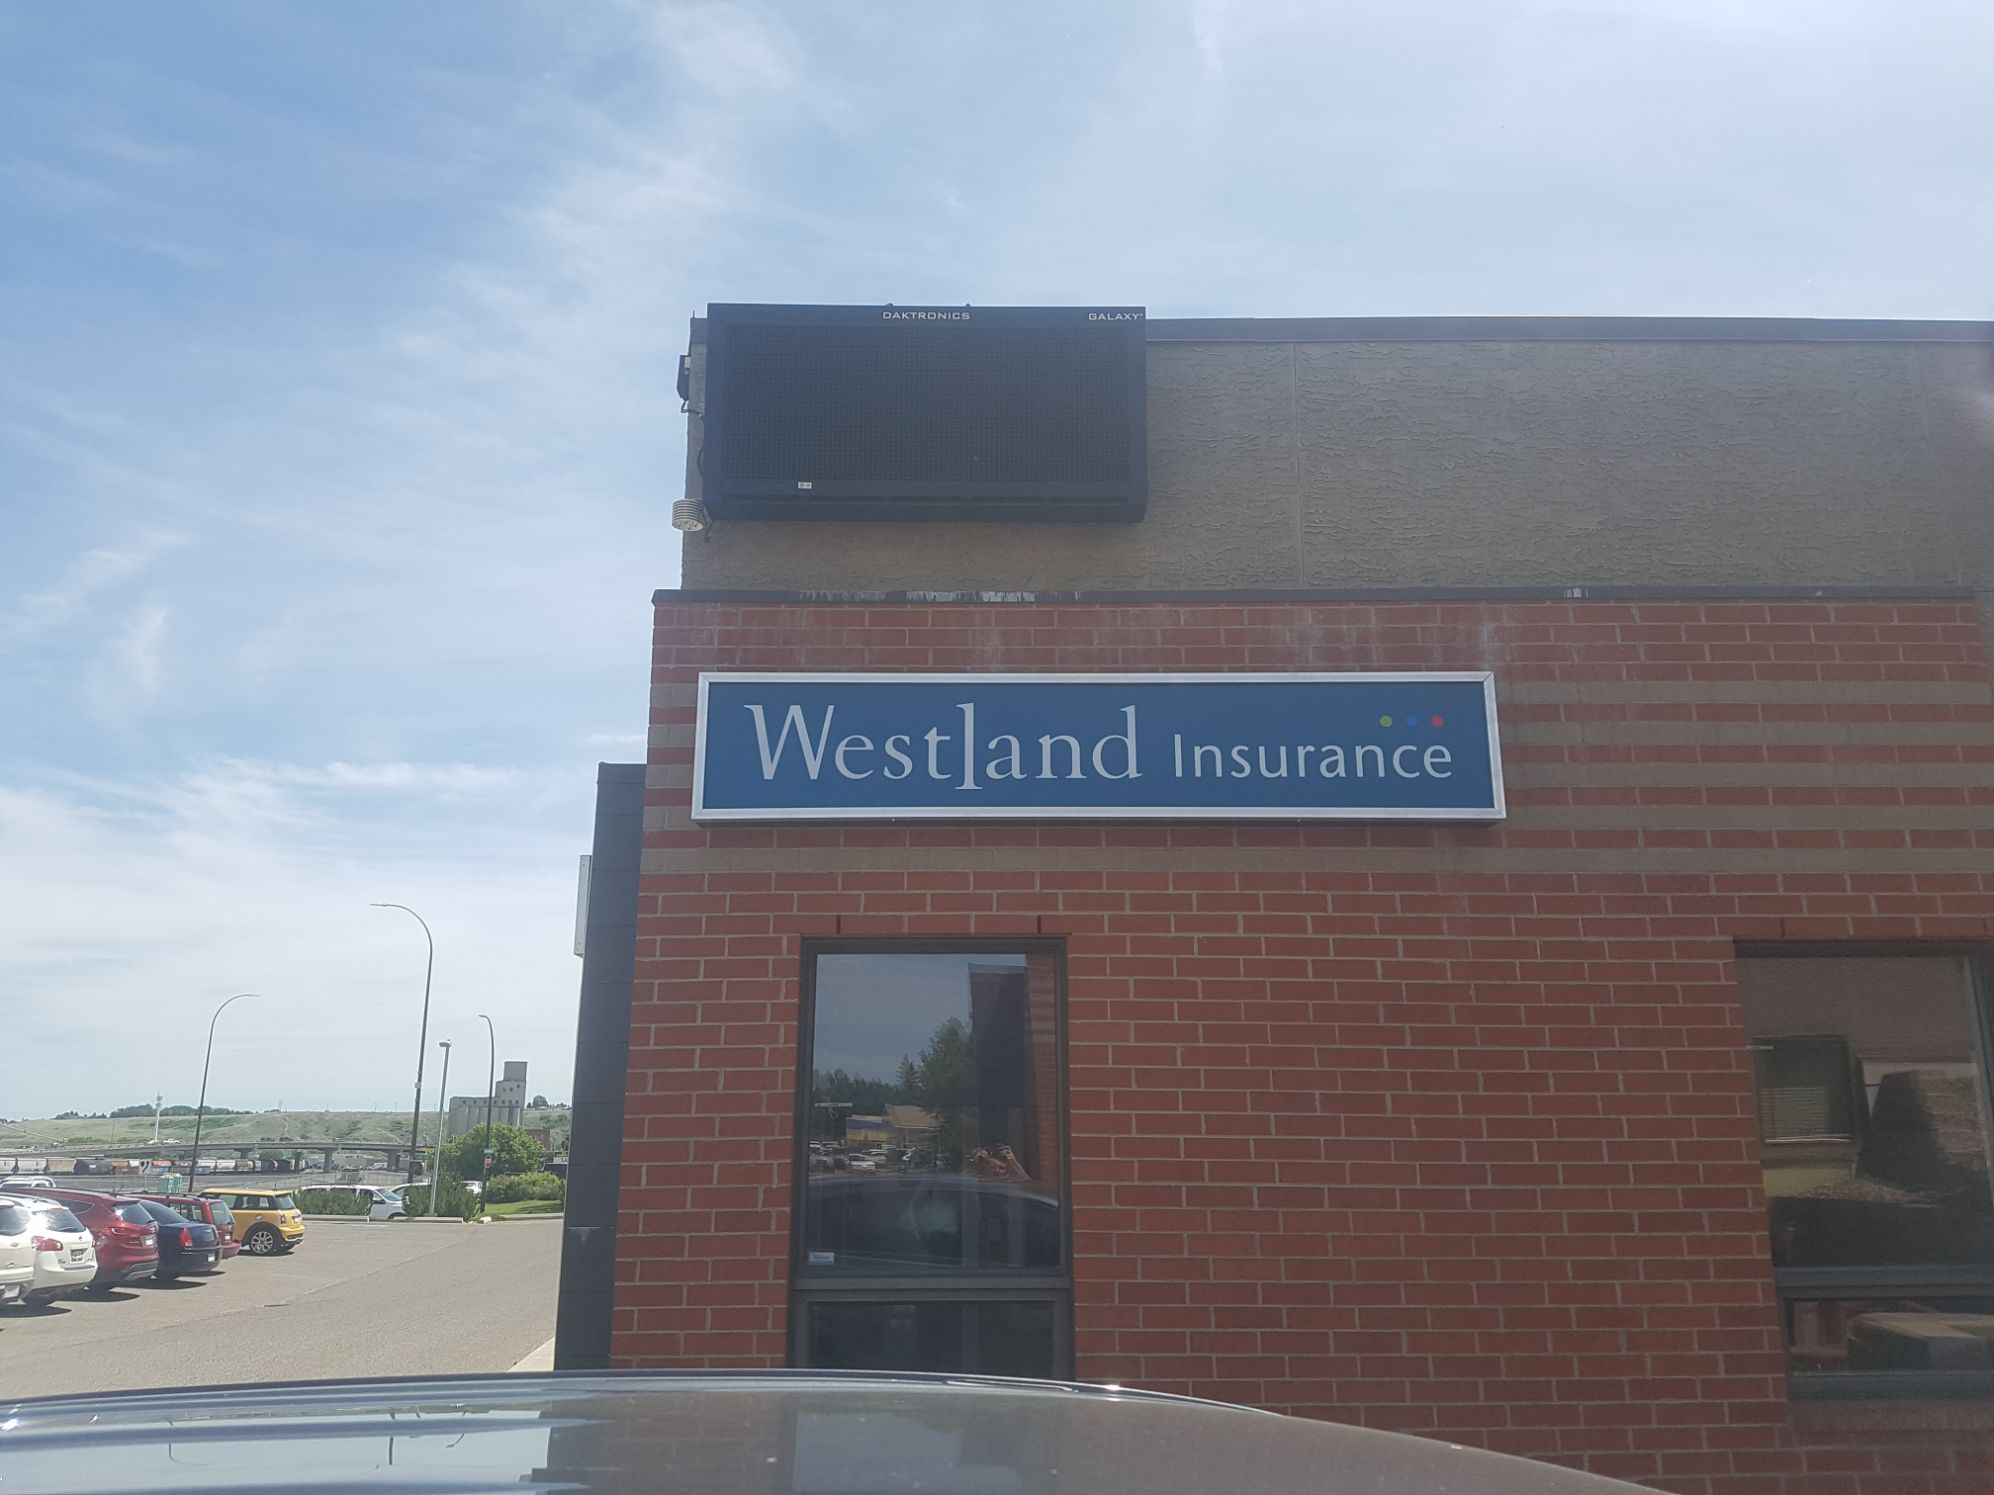 Westland Insurance illuminated sign